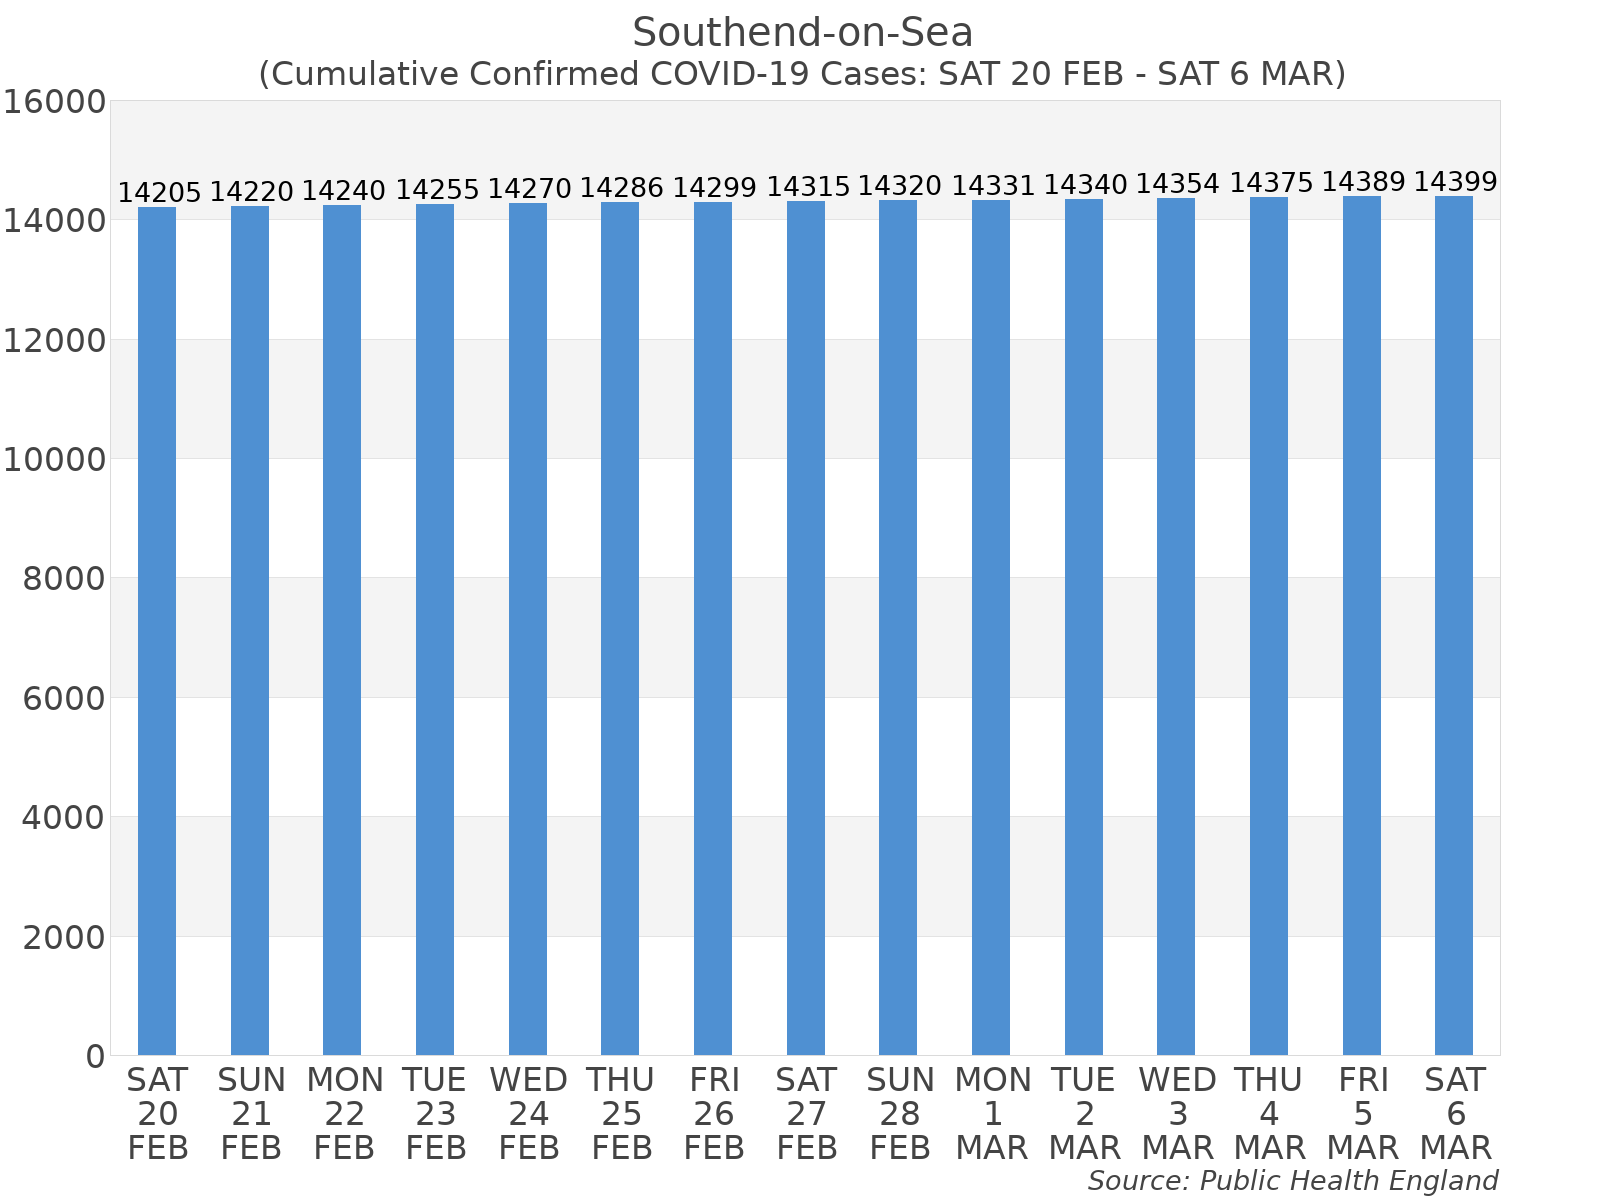 Graph tracking the number of confirmed coronavirus (COVID-19) cases where the patient lives within the Southend-on-Sea Upper Tier Local Authority Area.